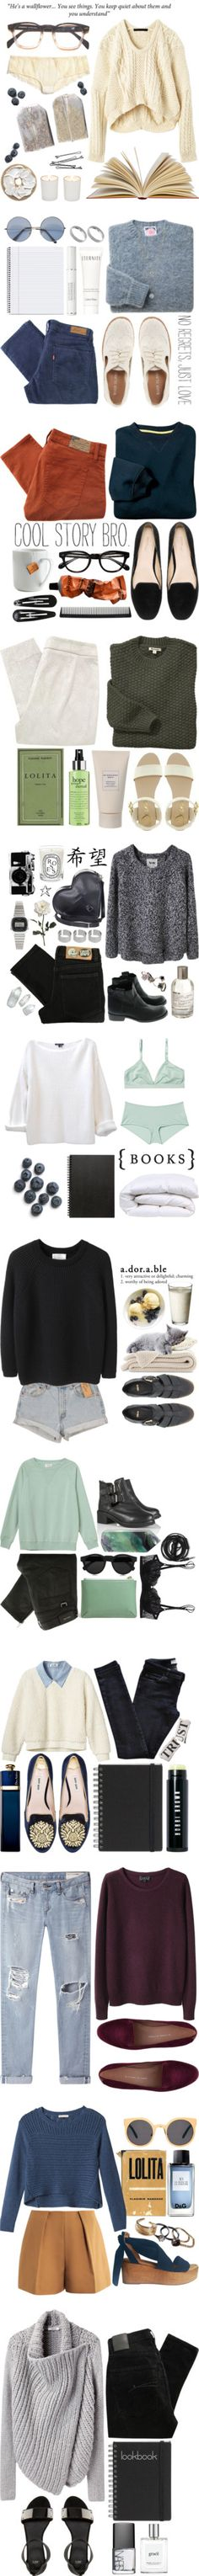 """Sweaters!"" by ctodtims ❤ liked on Polyvore"